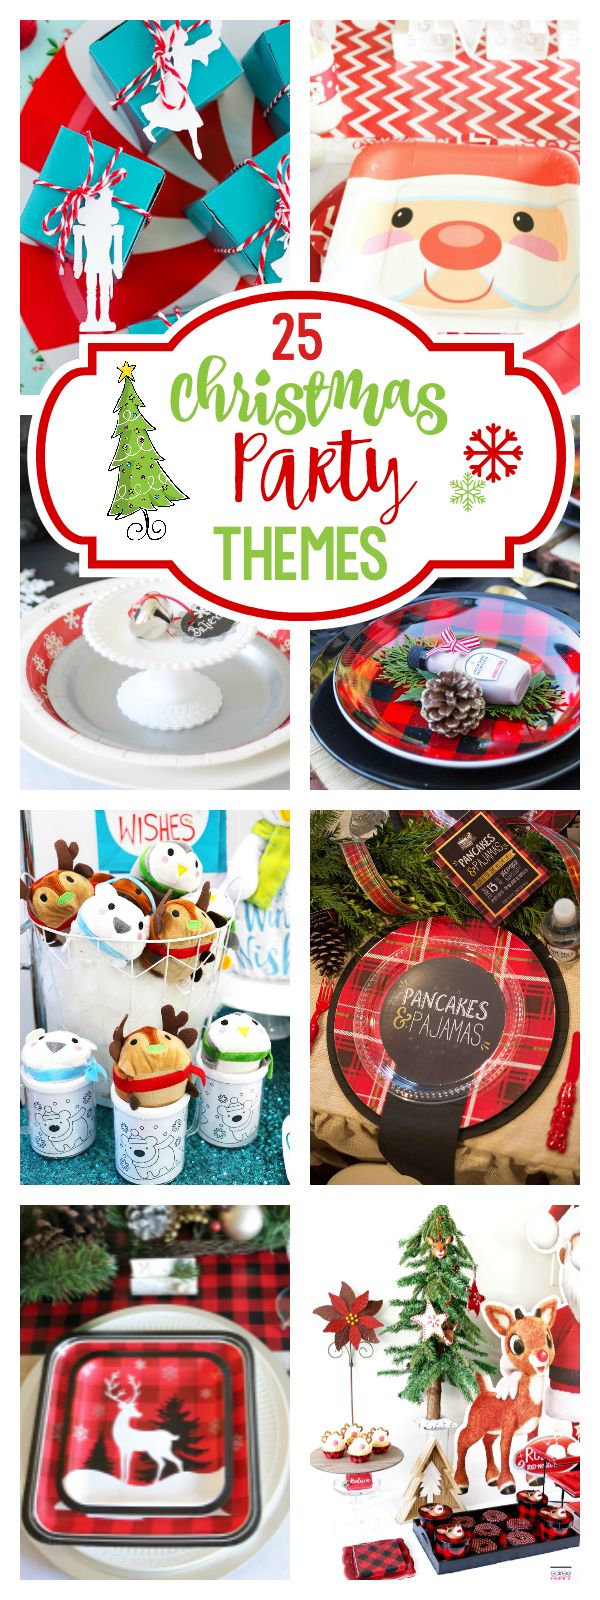 bf4848c03ab1a 25 Christmas Party Theme Ideas and Party Ideas to throw the best holiday  party this year